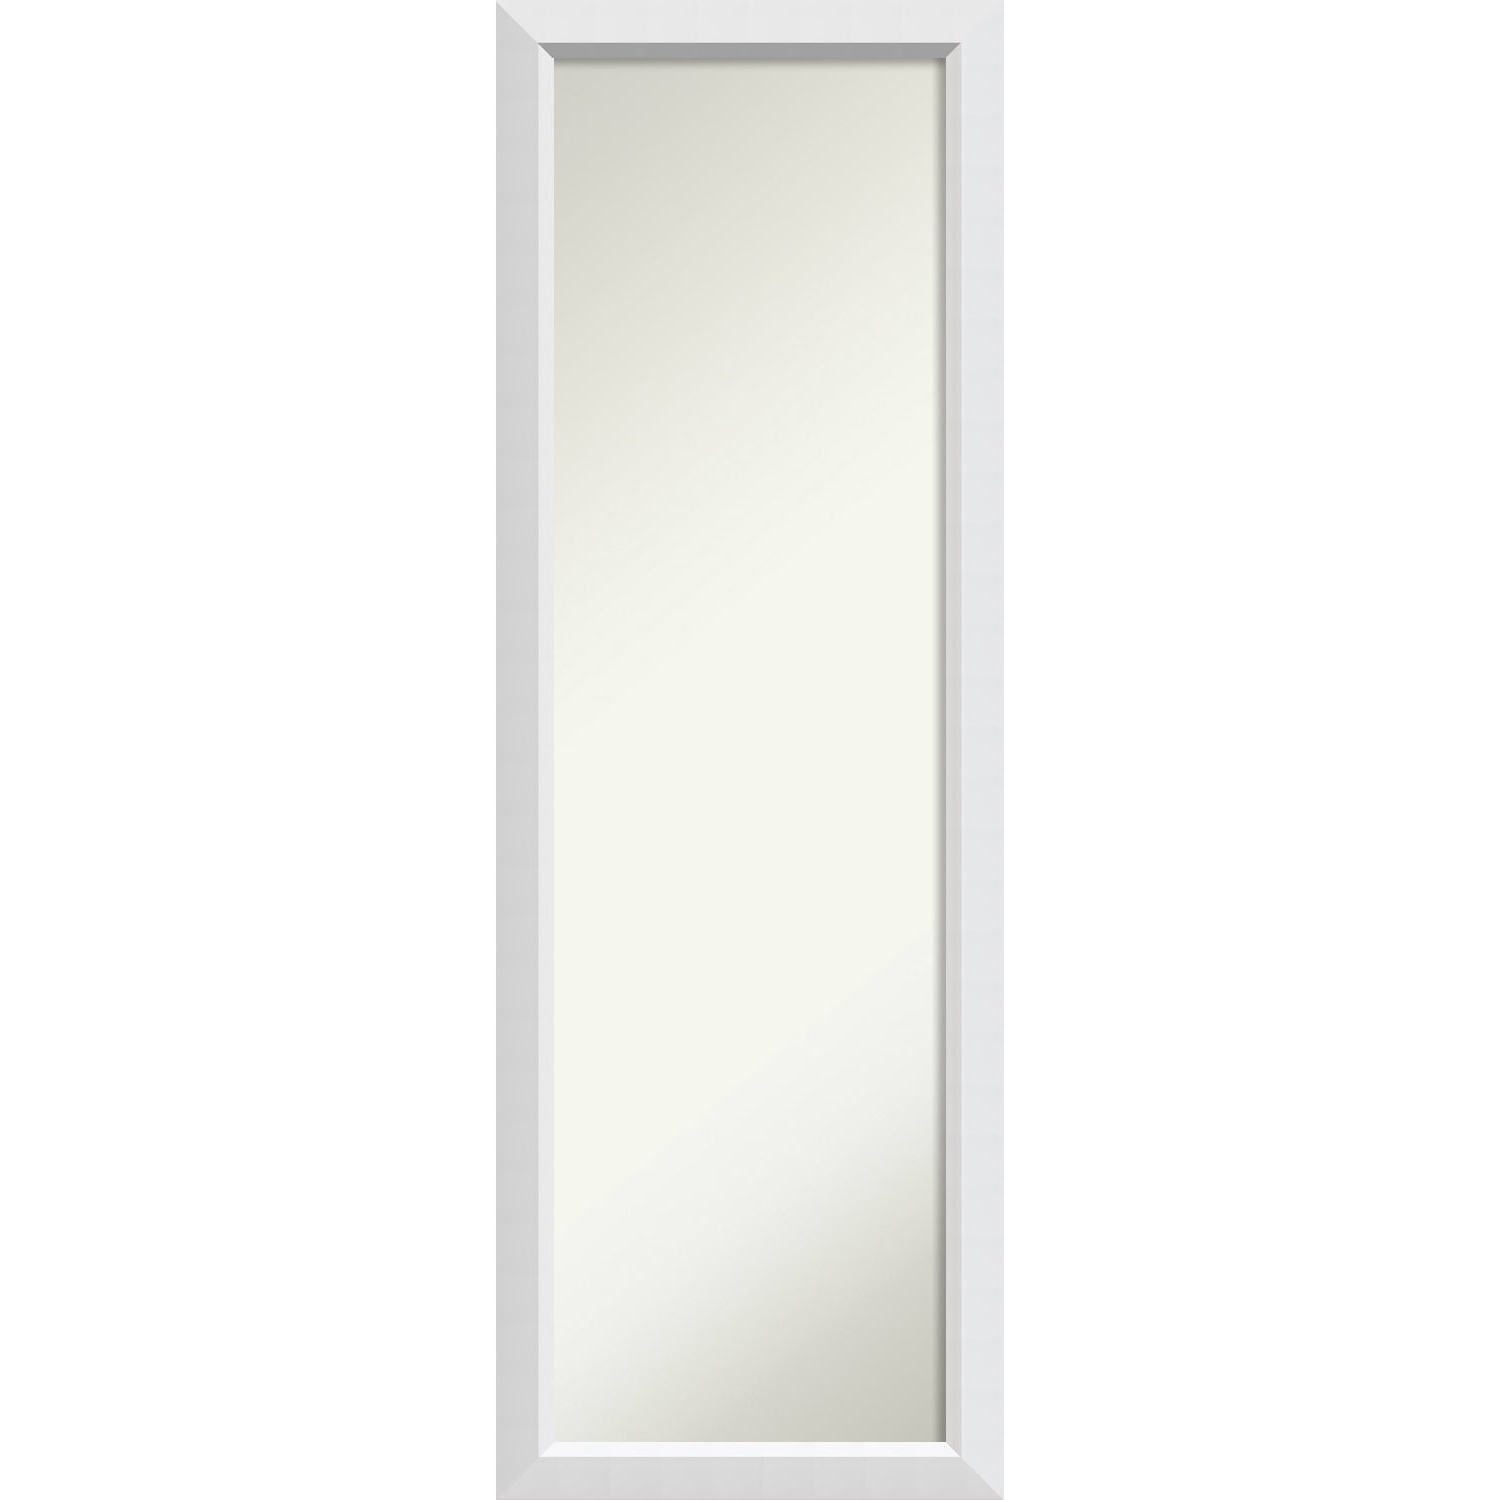 Full Length Wall Mirrors For Latest On The Door Full Length Wall Mirror, Blanco White 18 X 52 Inch – 52 X 18 X   (View 3 of 20)